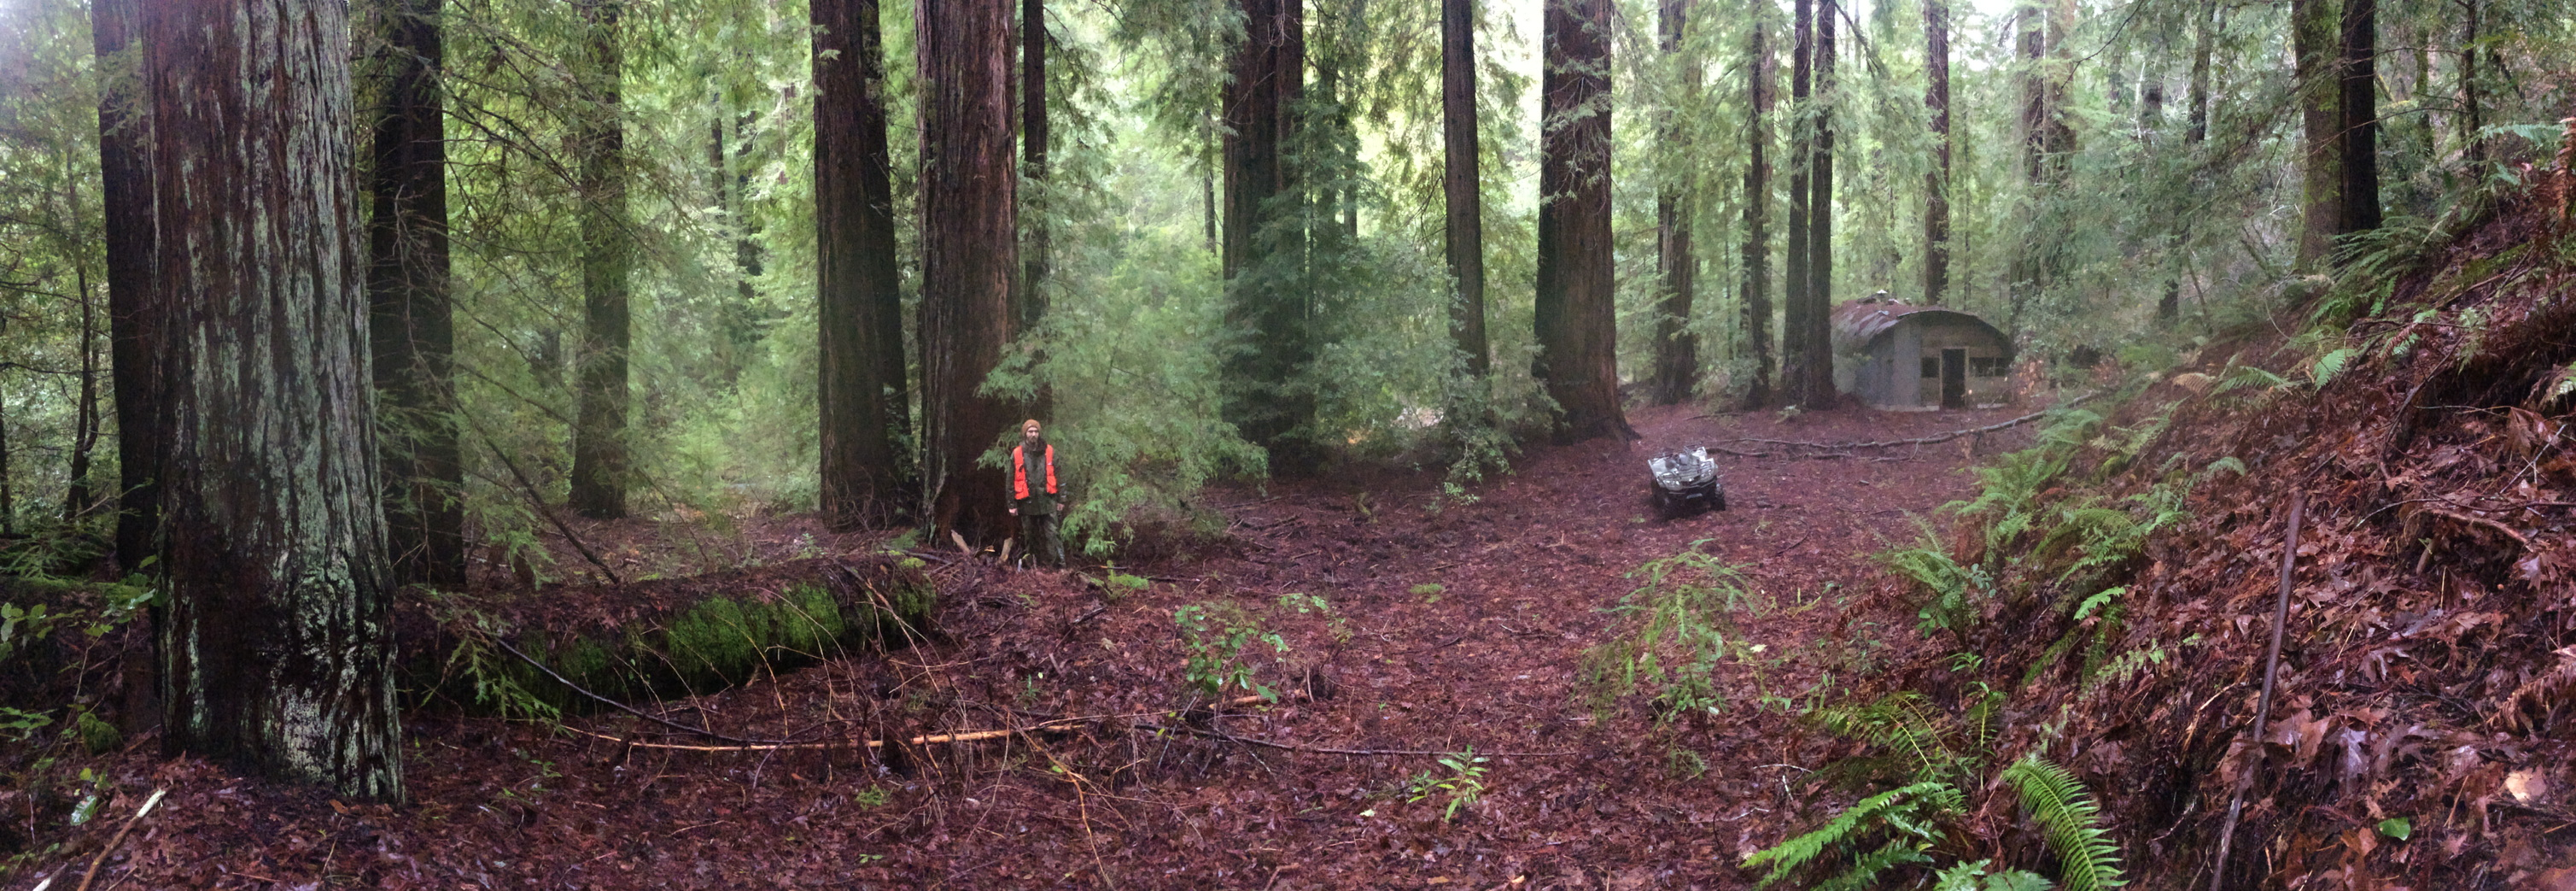 Forester standing in a redwood forest with his quad and an old structure in the distance